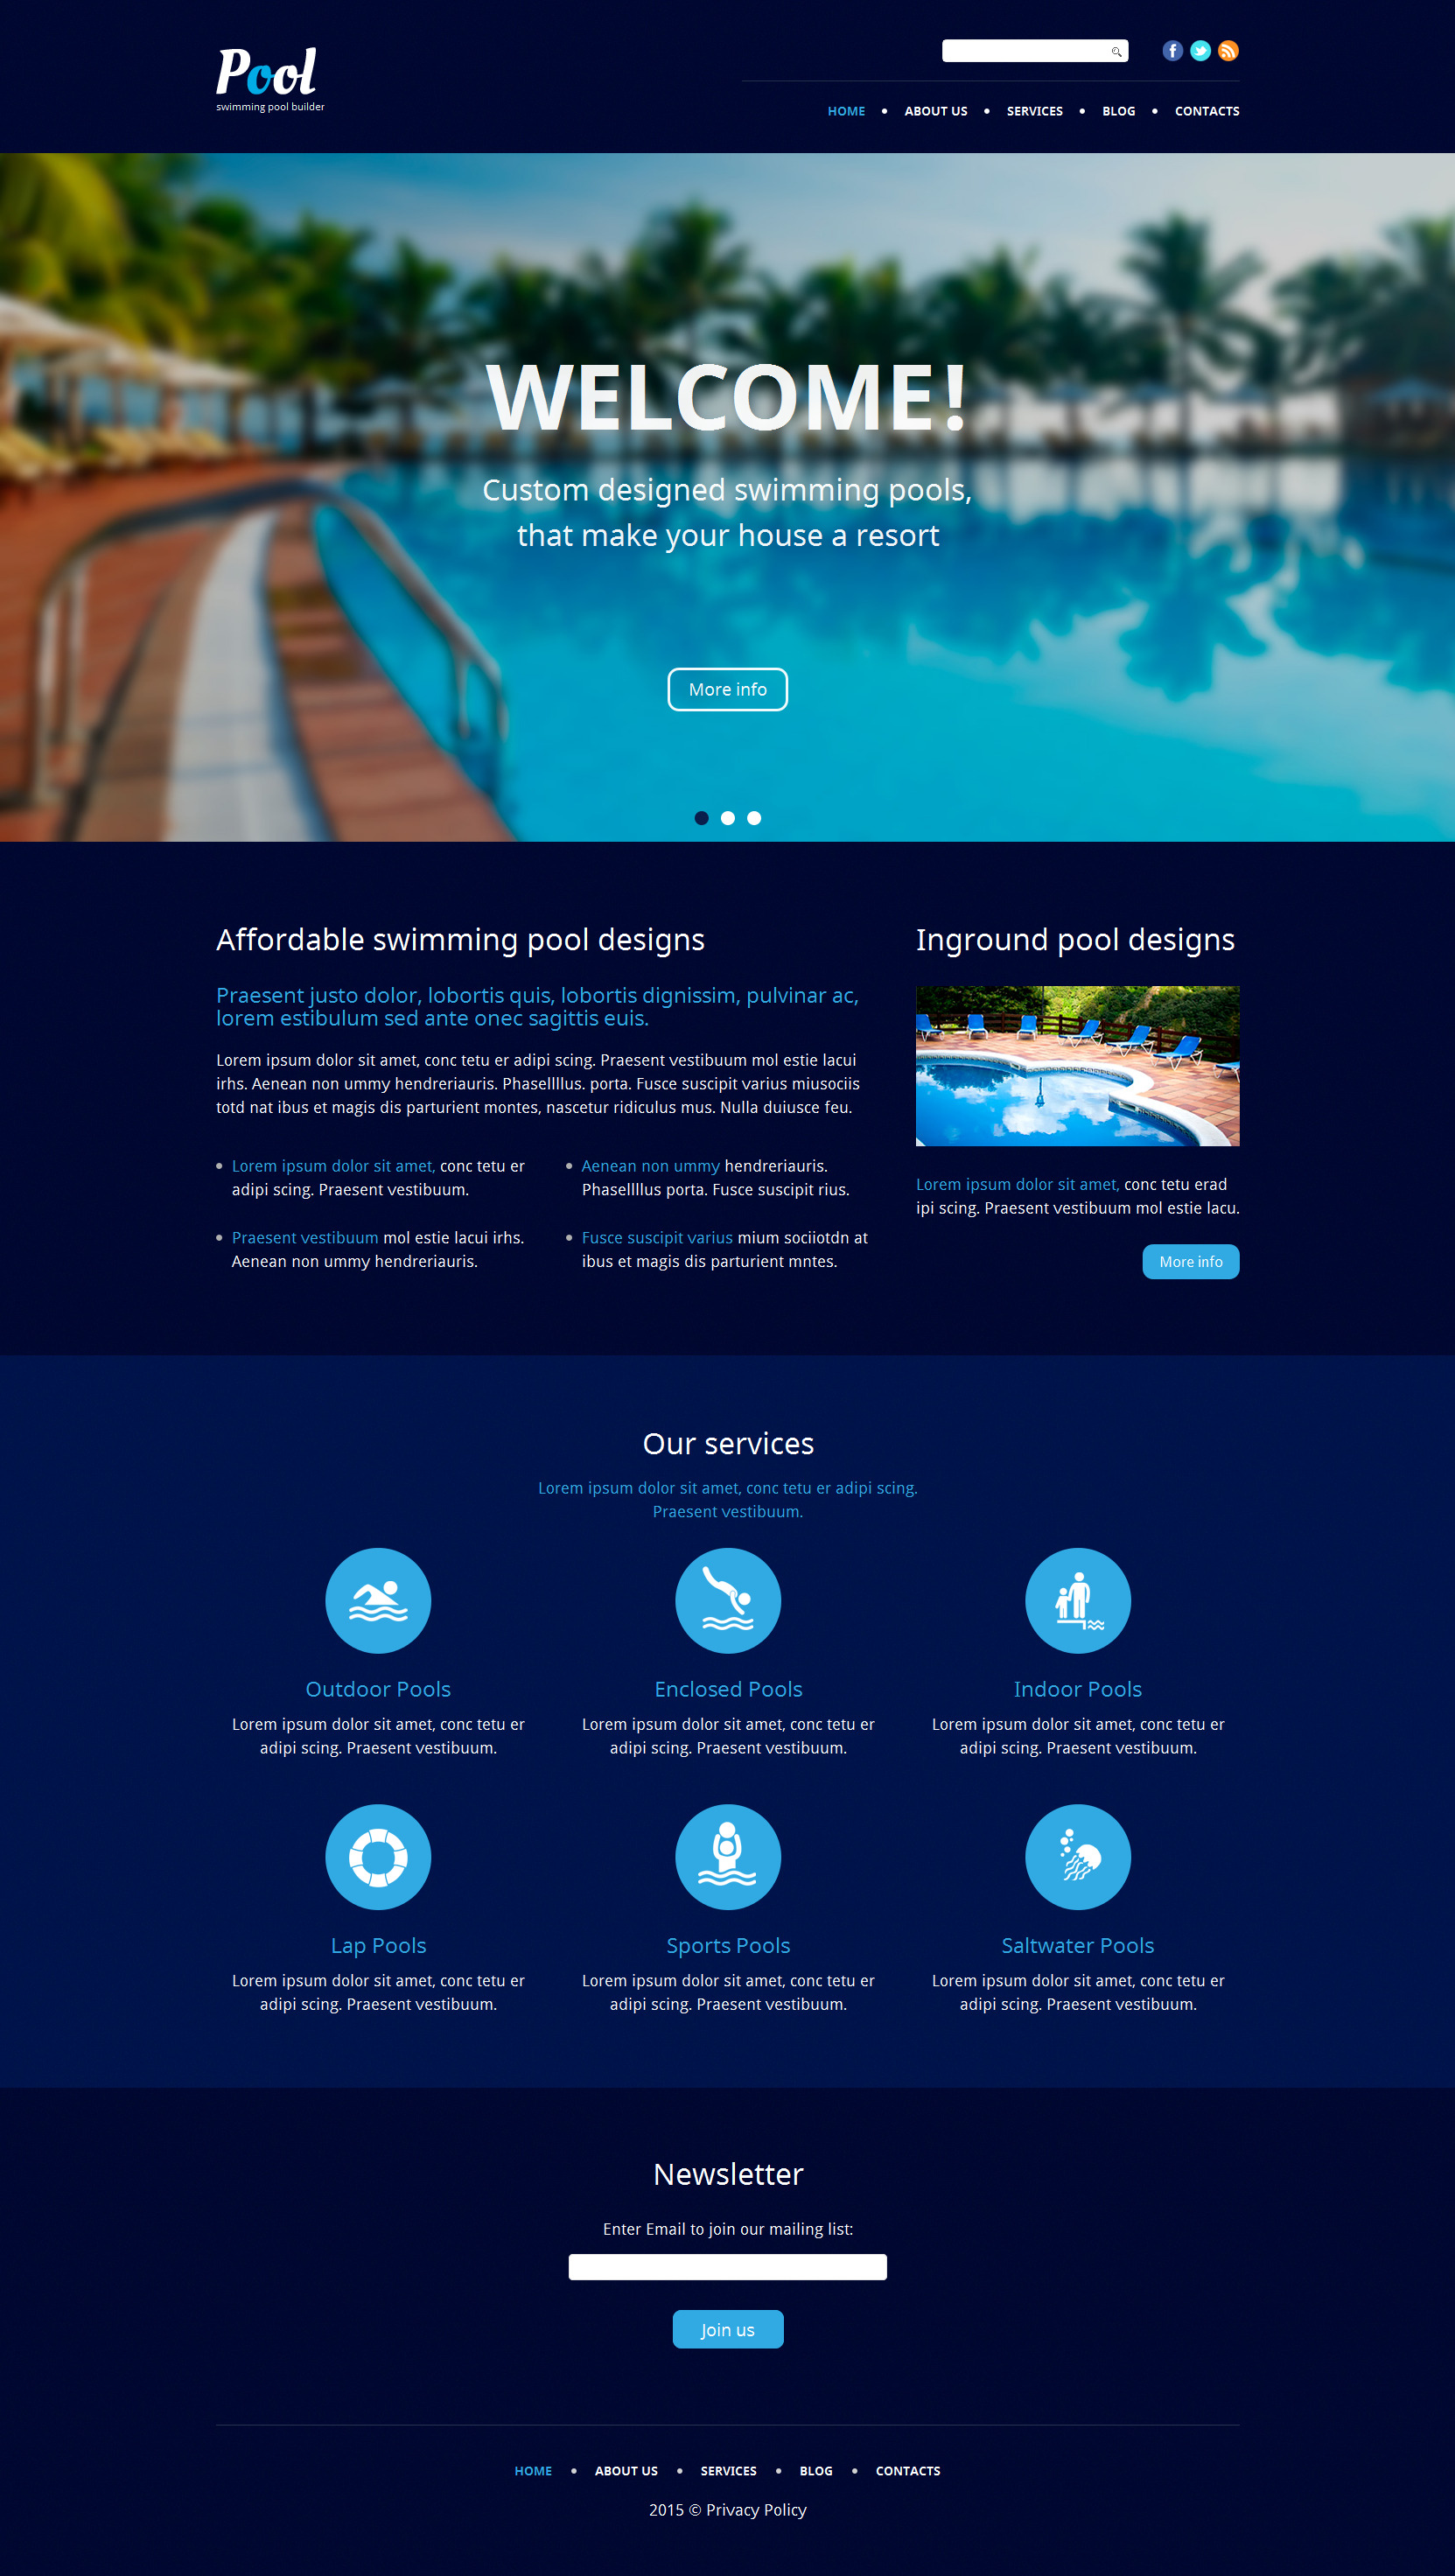 The Pool Company WordPress Design 53939, one of the best WordPress themes of its kind (business, most popular), also known as pool company WordPress template, maintenance WordPress template, services WordPress template, estimate WordPress template, cleaner WordPress template, dirty WordPress template, testimonials WordPress template, professional WordPress template, workteam WordPress template, tips WordPress template, client WordPress template, price WordPress template, tidying up WordPress template, sponge WordPress template, decoration WordPress template, preventative WordPress template, plumbing WordPress template, repair WordPress template, resurfacing WordPress template, painting WordPress template, fiberglass WordPress template, plaster WordPress template, deck WordPress template, drainage WordPress template, renovation and related with pool company, maintenance, services, estimate, cleaner, dirty, testimonials, professional, workteam, tips, client, price, tidying up, sponge, decoration, preventative, plumbing, repair, resurfacing, painting, fiberglass, plaster, deck, drainage, renovation, etc.